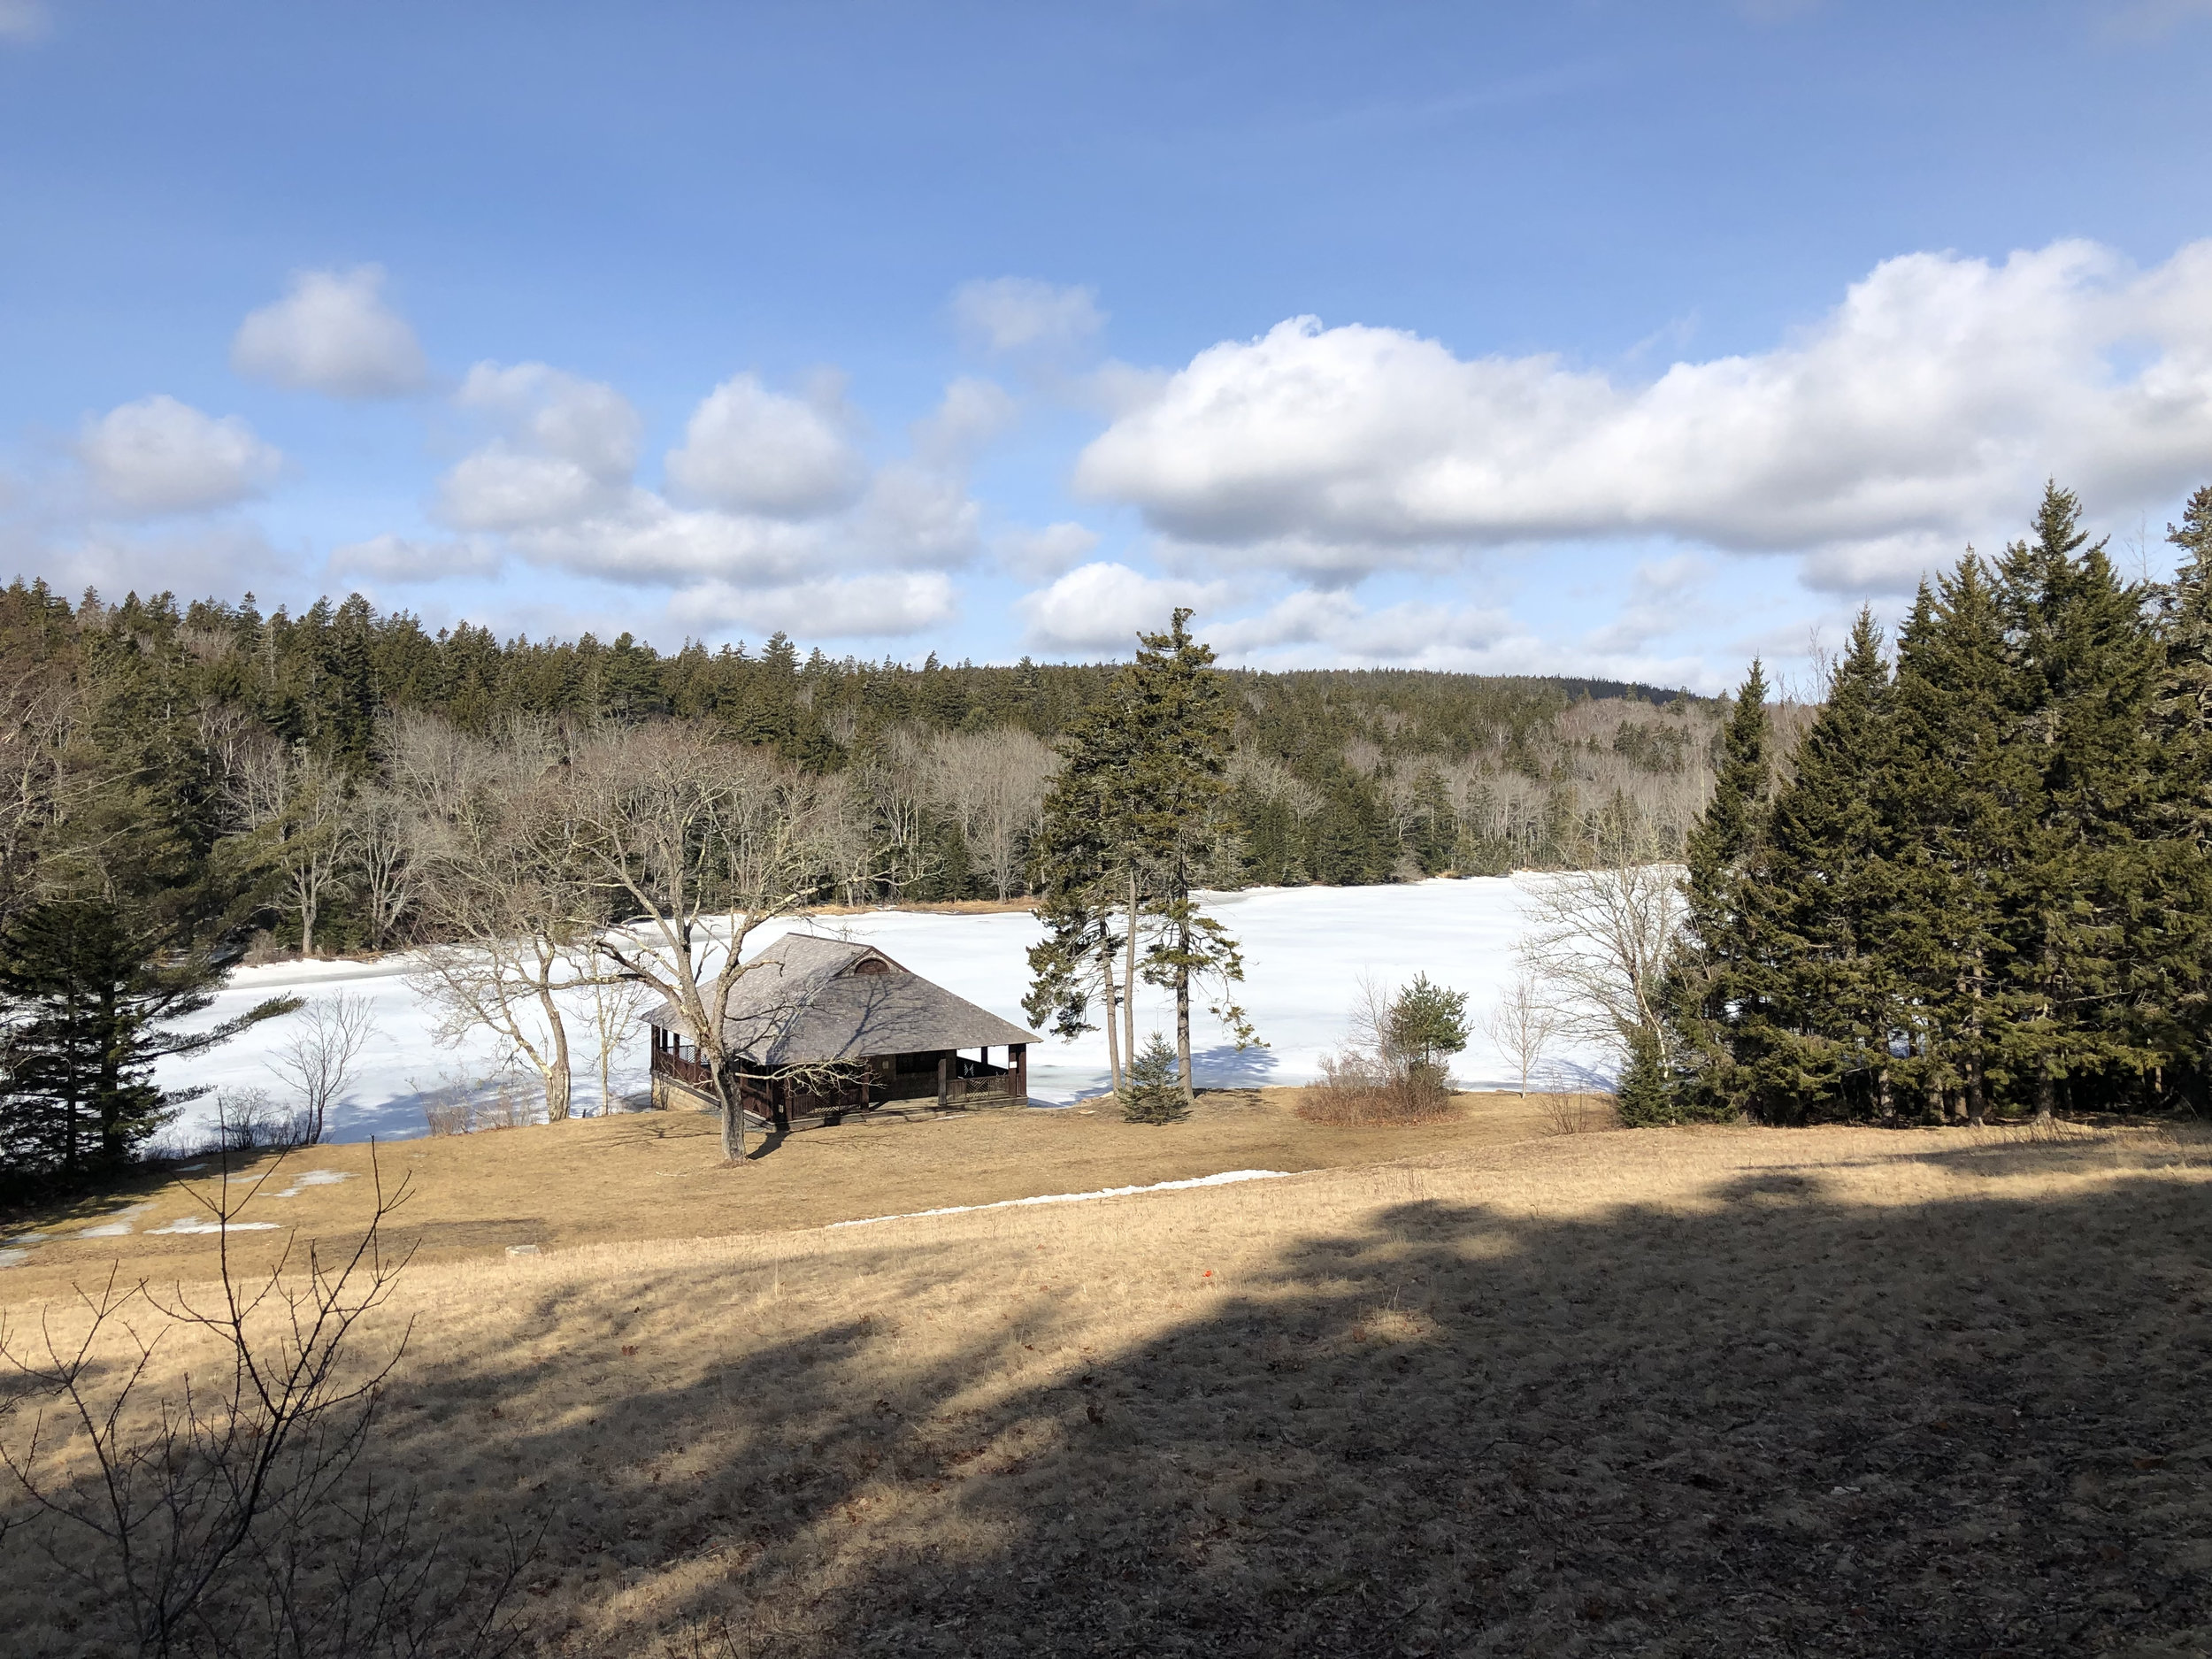 Little Long Pond, Land and Garden Reserve, Maine.